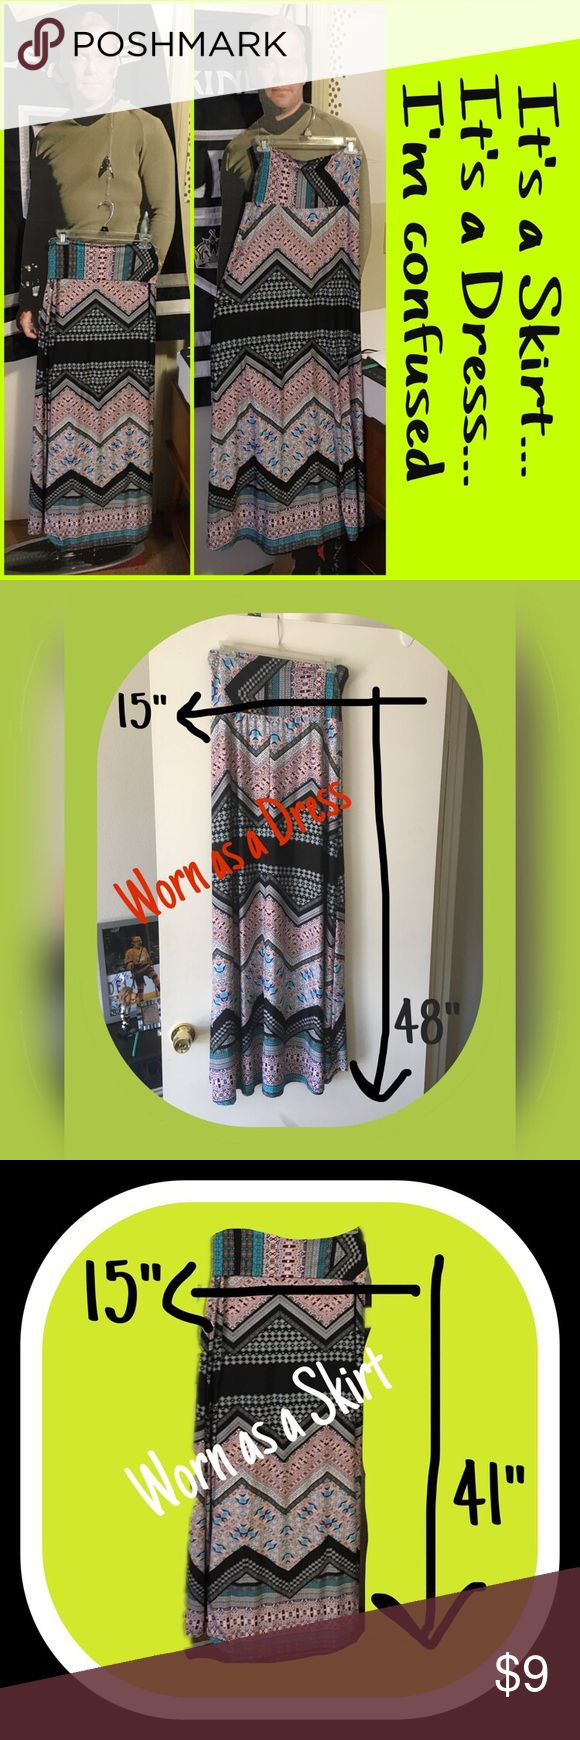 💥💥 BOGO SALE 💥💥 🍀🍀 EUC It's a Skirt and a Dress all in one 🍀🍀 can be worn either way.  It's up to you and your mood 😜 Size Large Skirts Maxi